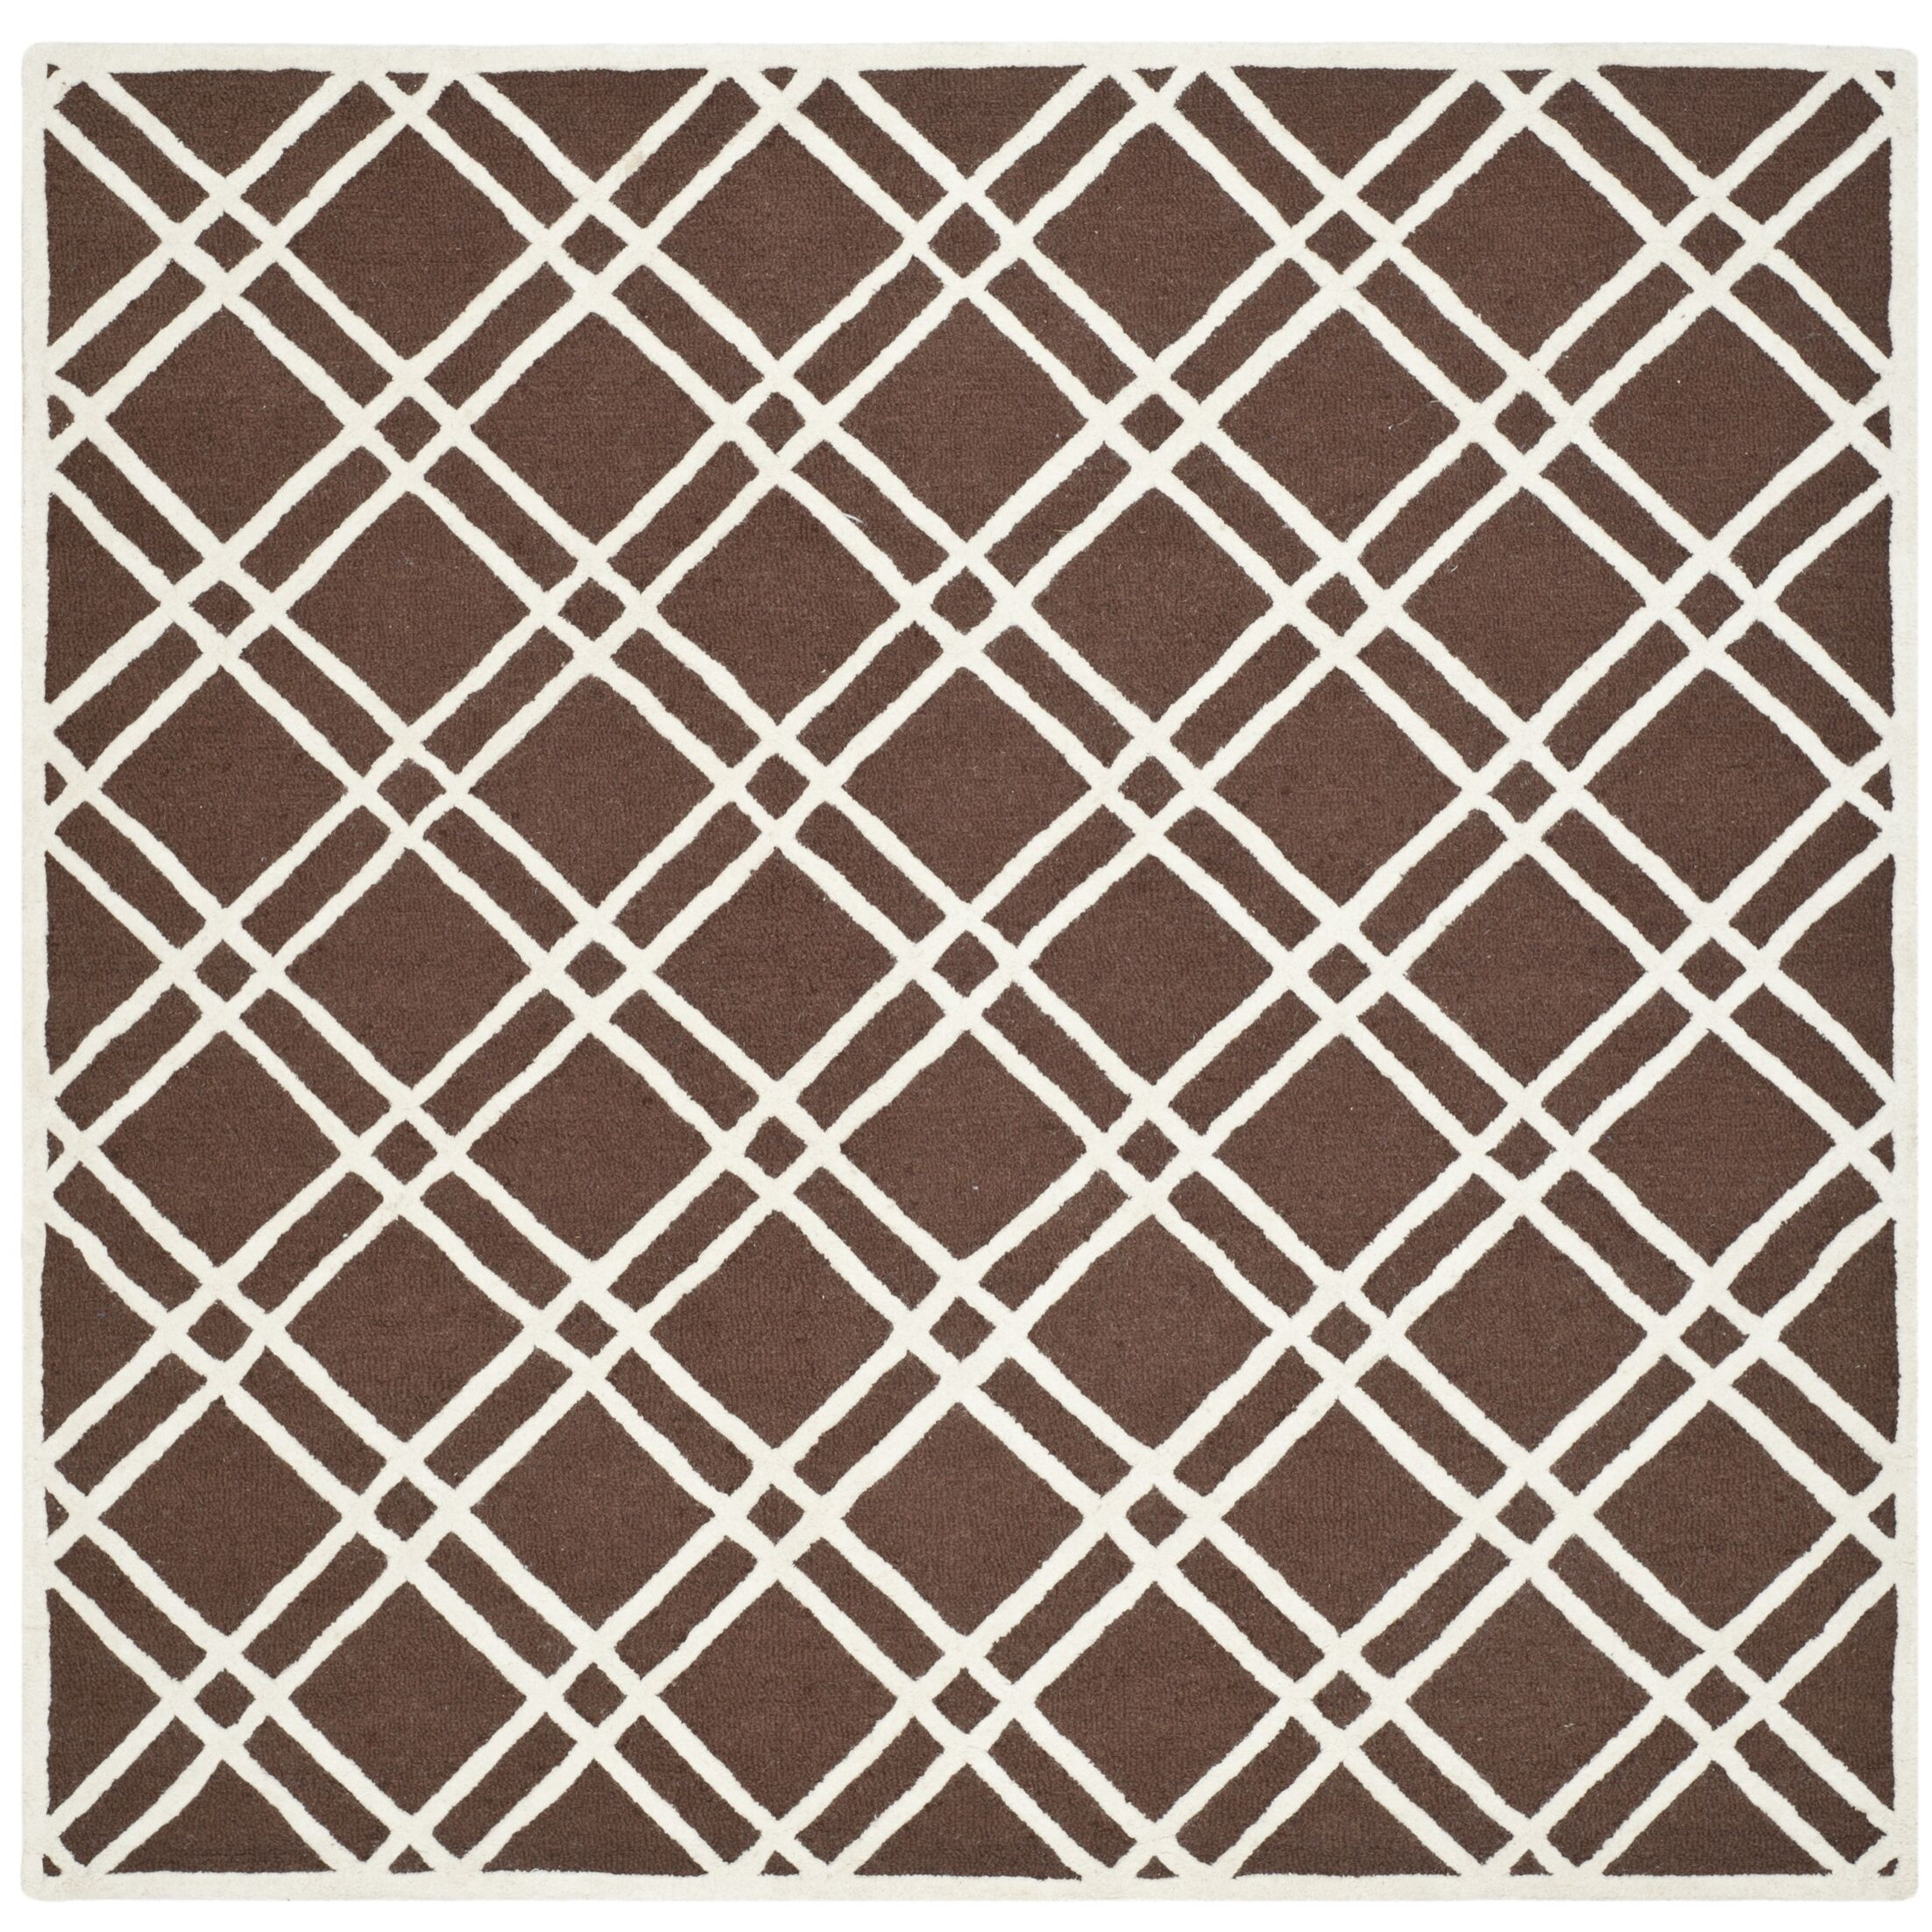 Martins Dark Brown Area Rug Rug Size: Square 8'